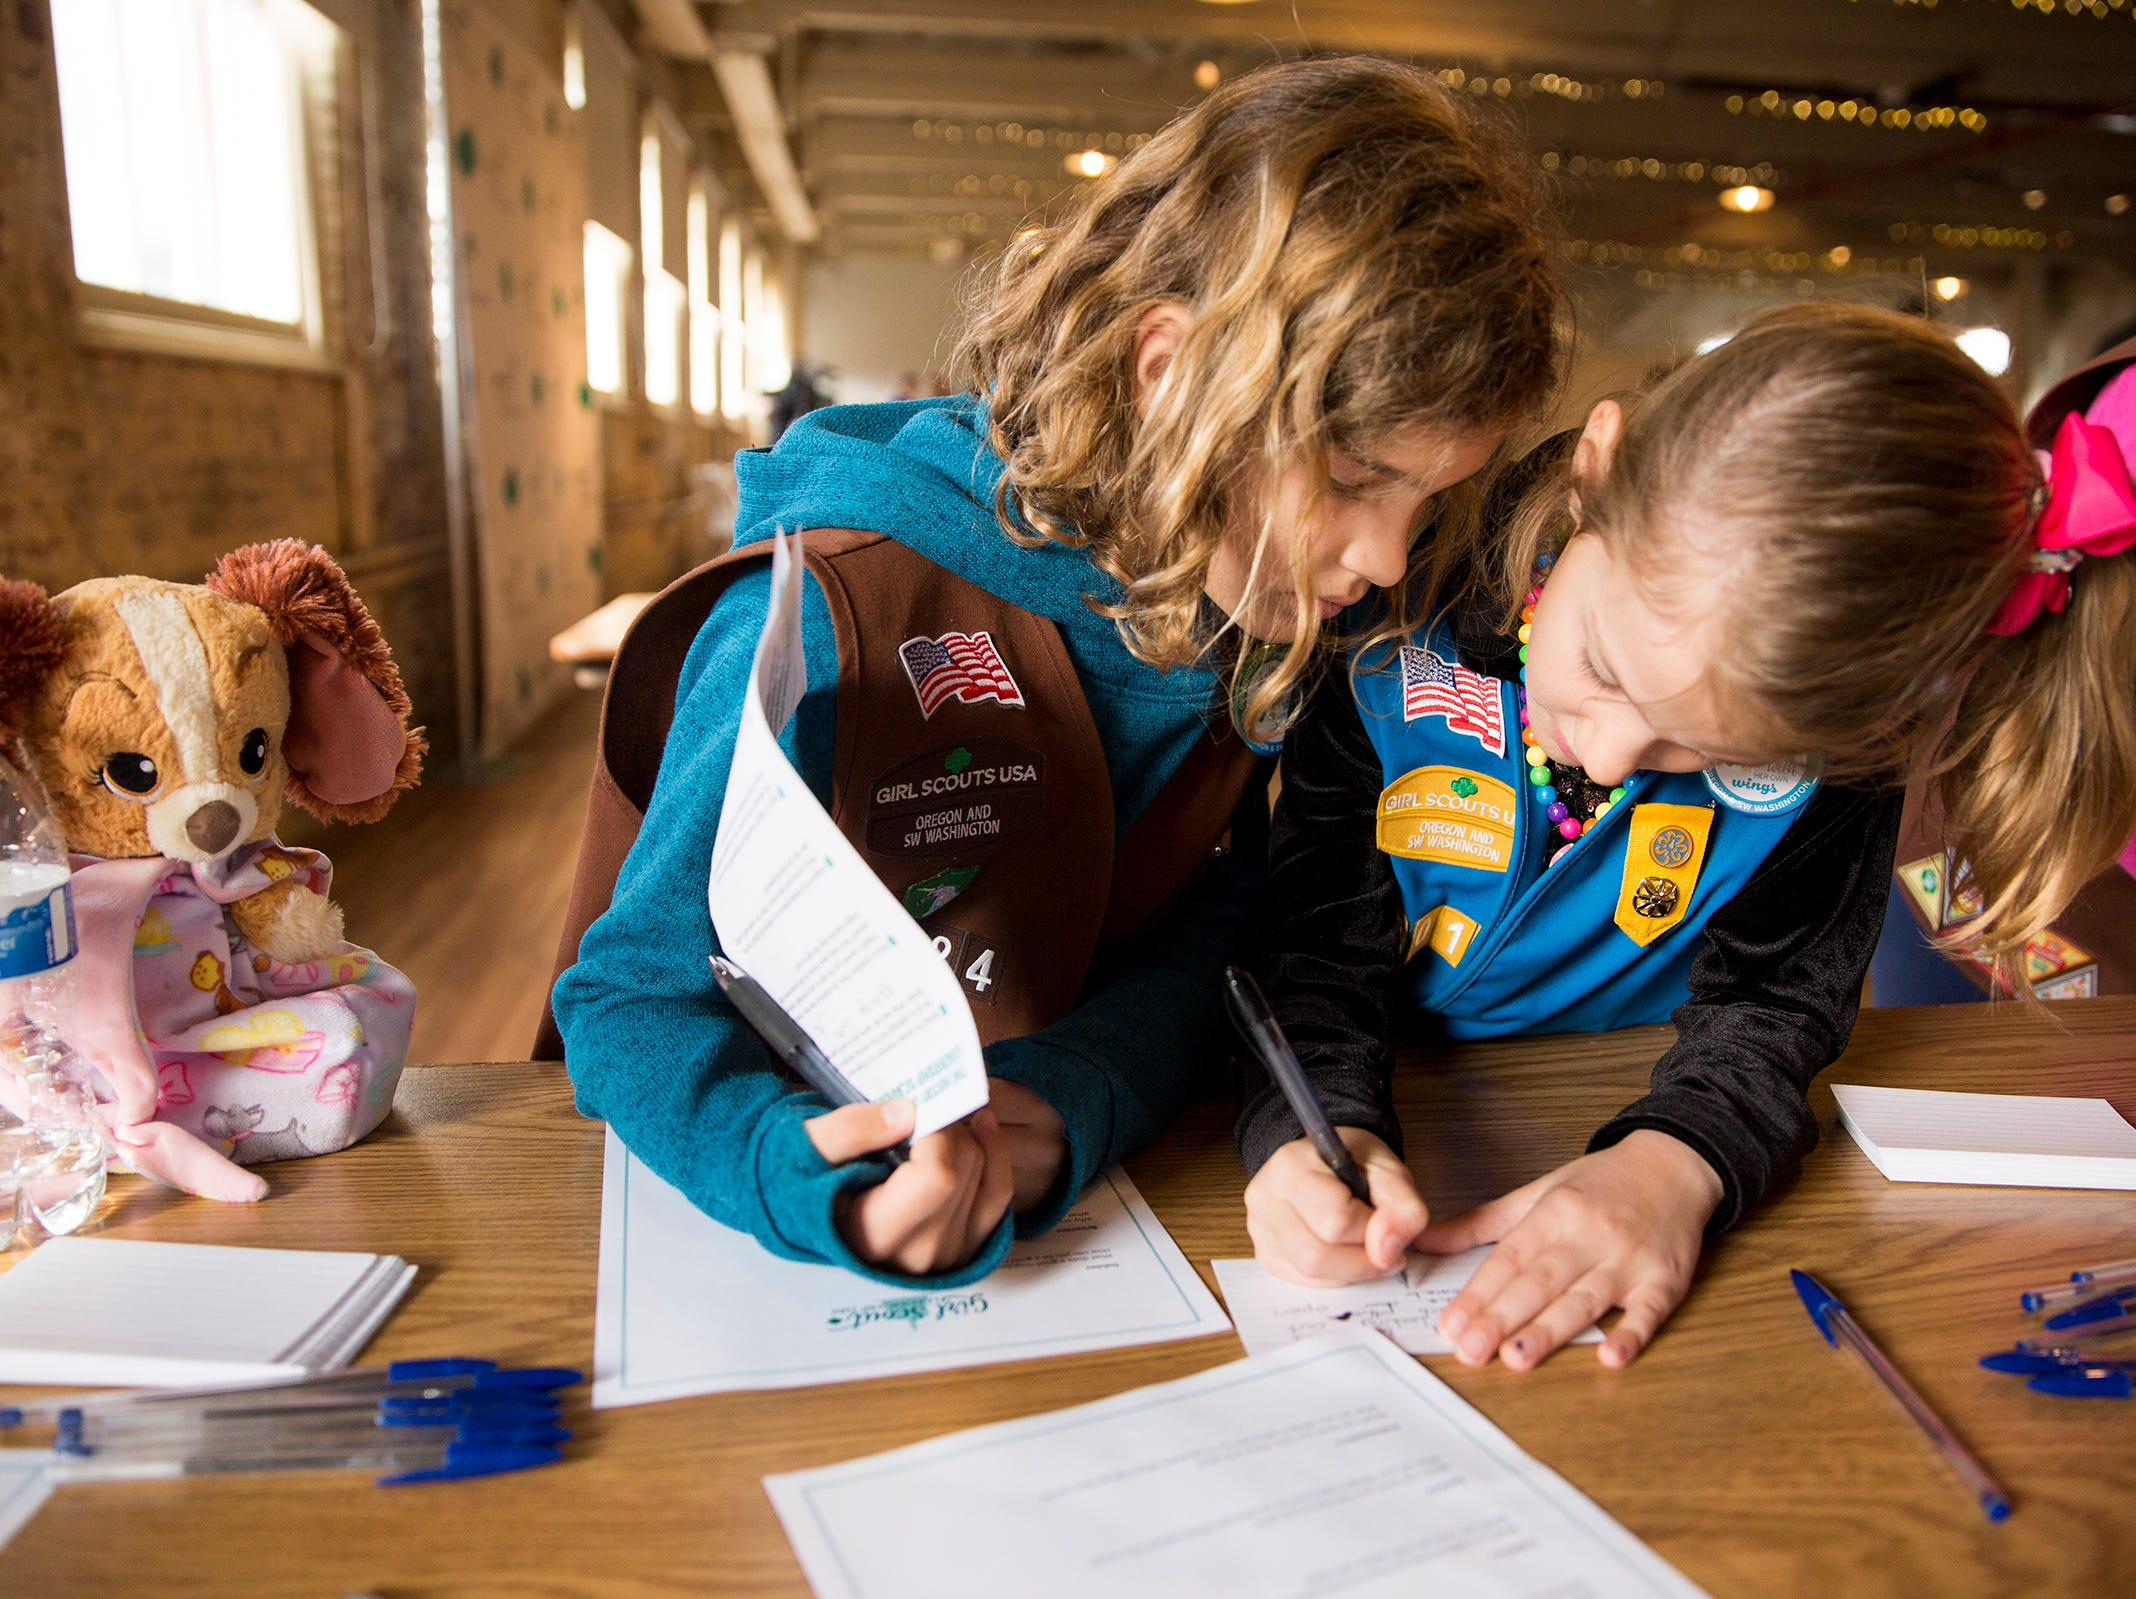 Sisters Charlotte Ferschweiler, 6, and Ava Ferschweiler, 8, of Milwaukee, write down interview questions to ask other girls during Girl Scout Leadership Day at the Willamette Heritage Center in Salem March 12, 2019.